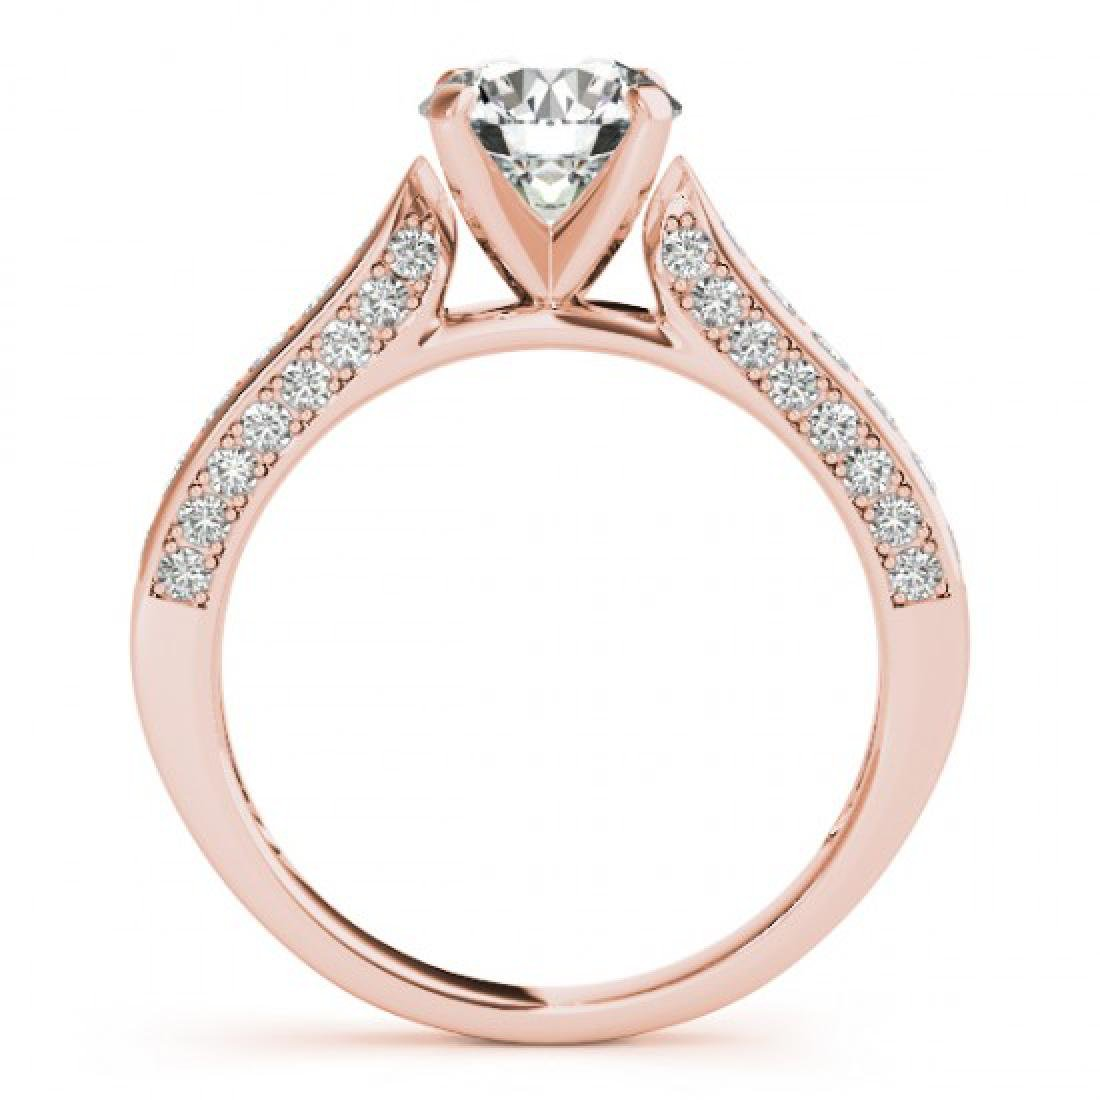 1.6 CTW Certified VS/SI Diamond Solitaire Ring 14K Rose - 2